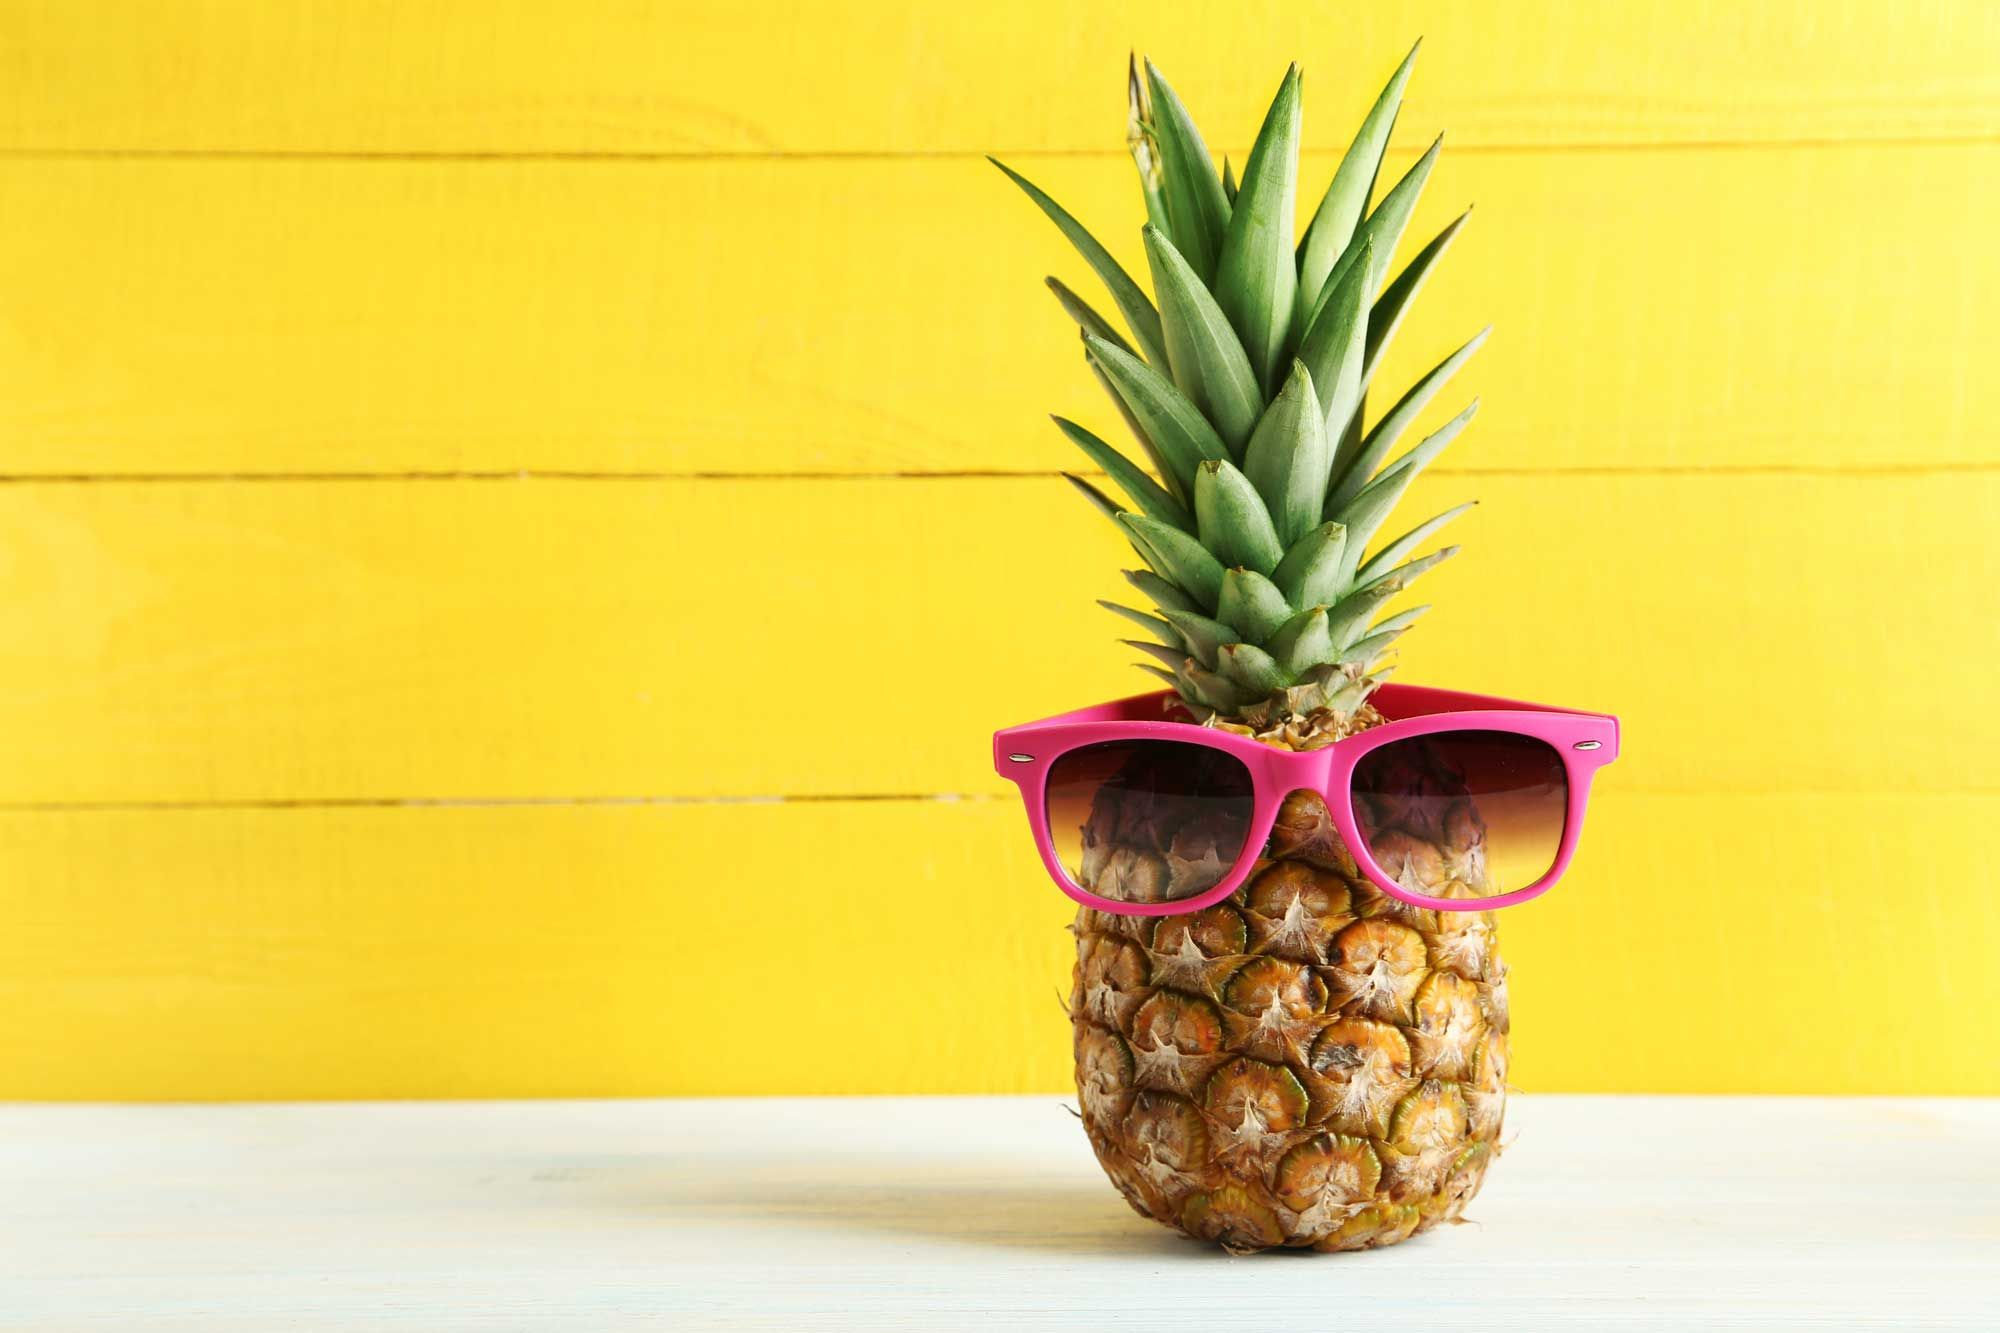 Cool Pineapple Sunglasses Wallpaper Desktop